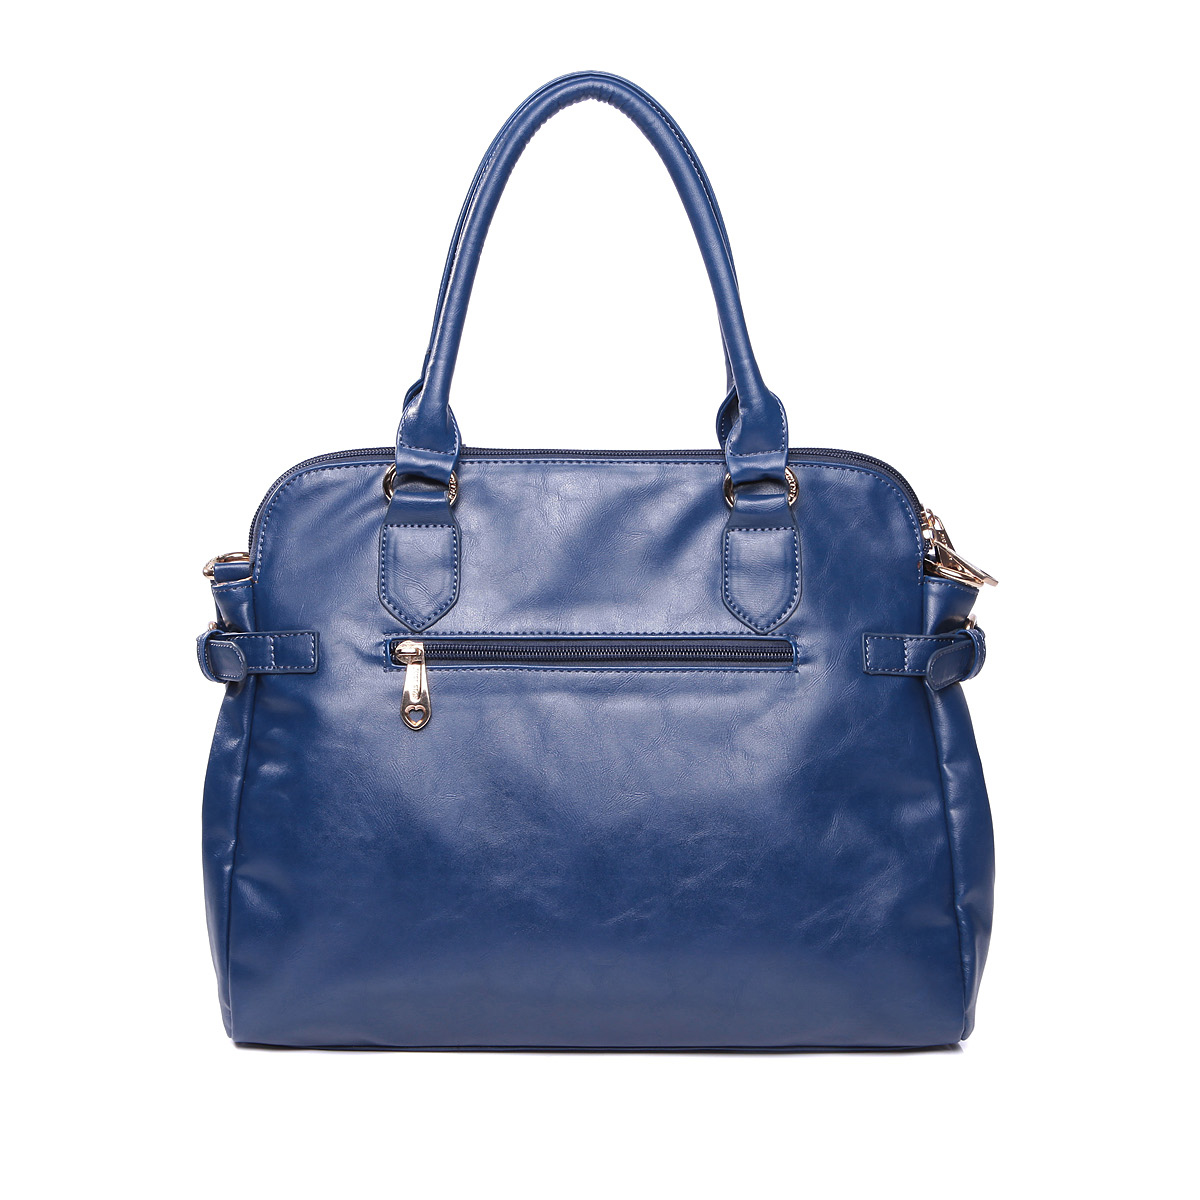 ... Position: Home  Women's Bags  Tote Bags  PU leather tote bag Blue